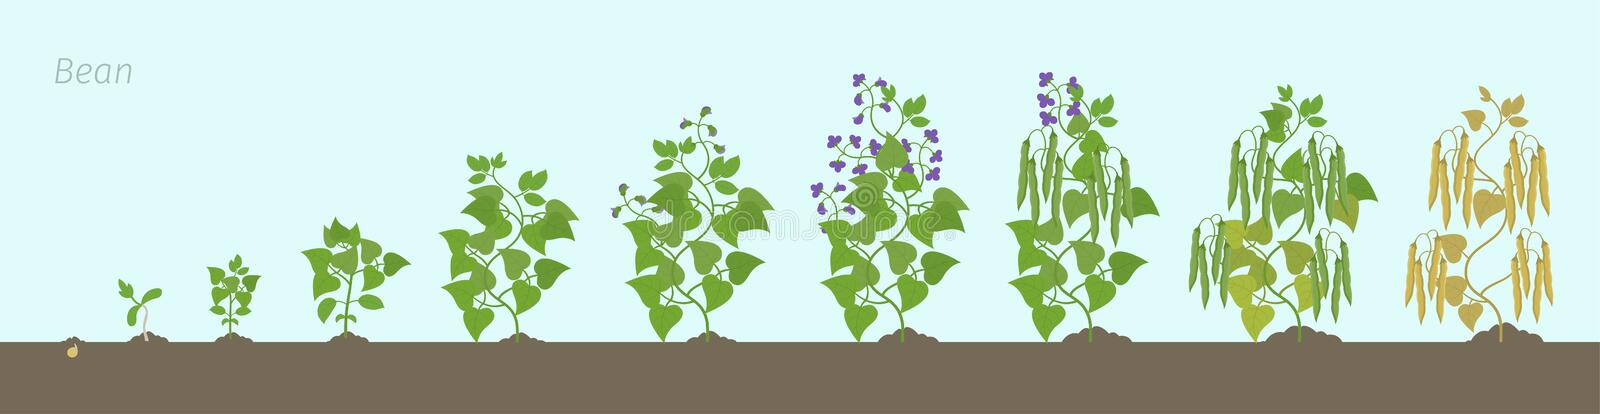 Bean plant. In the soil. Family Fabaceae phases set ripening period. Life cycle, animation progression. Growth stages of bean plant In the soil. Bean family stock illustration